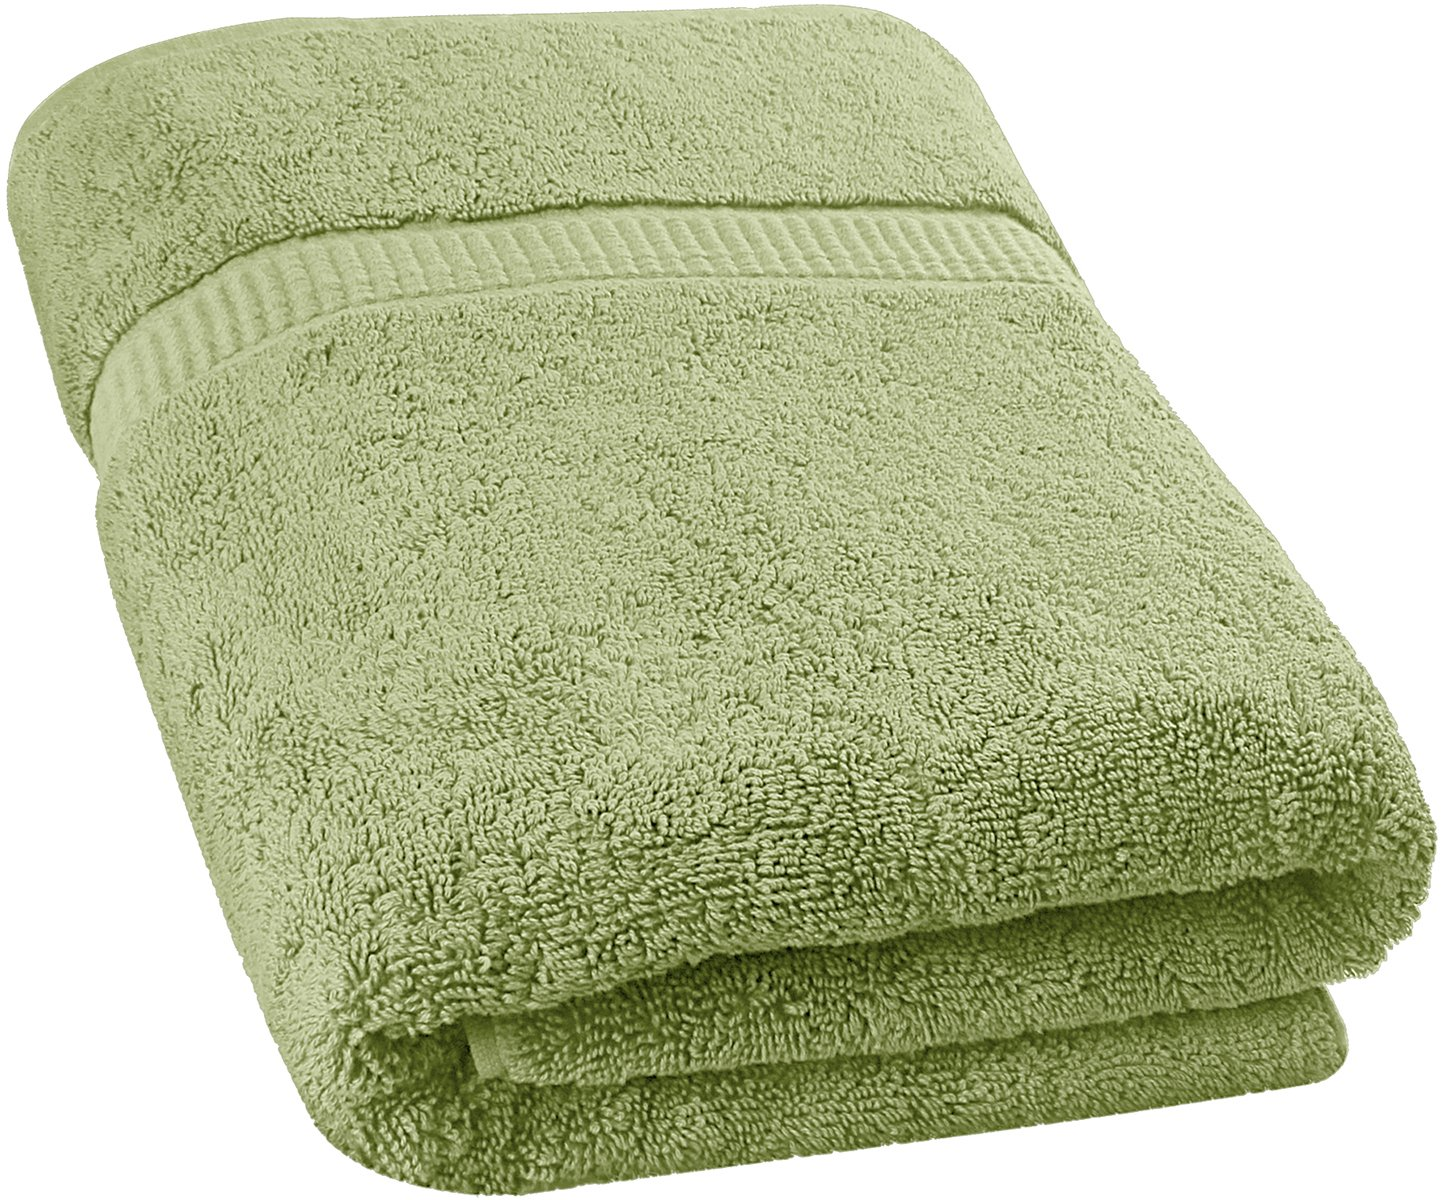 luxury bath sheet towel sage green 35 x 70 inch 100 cotton extra large be ebay. Black Bedroom Furniture Sets. Home Design Ideas